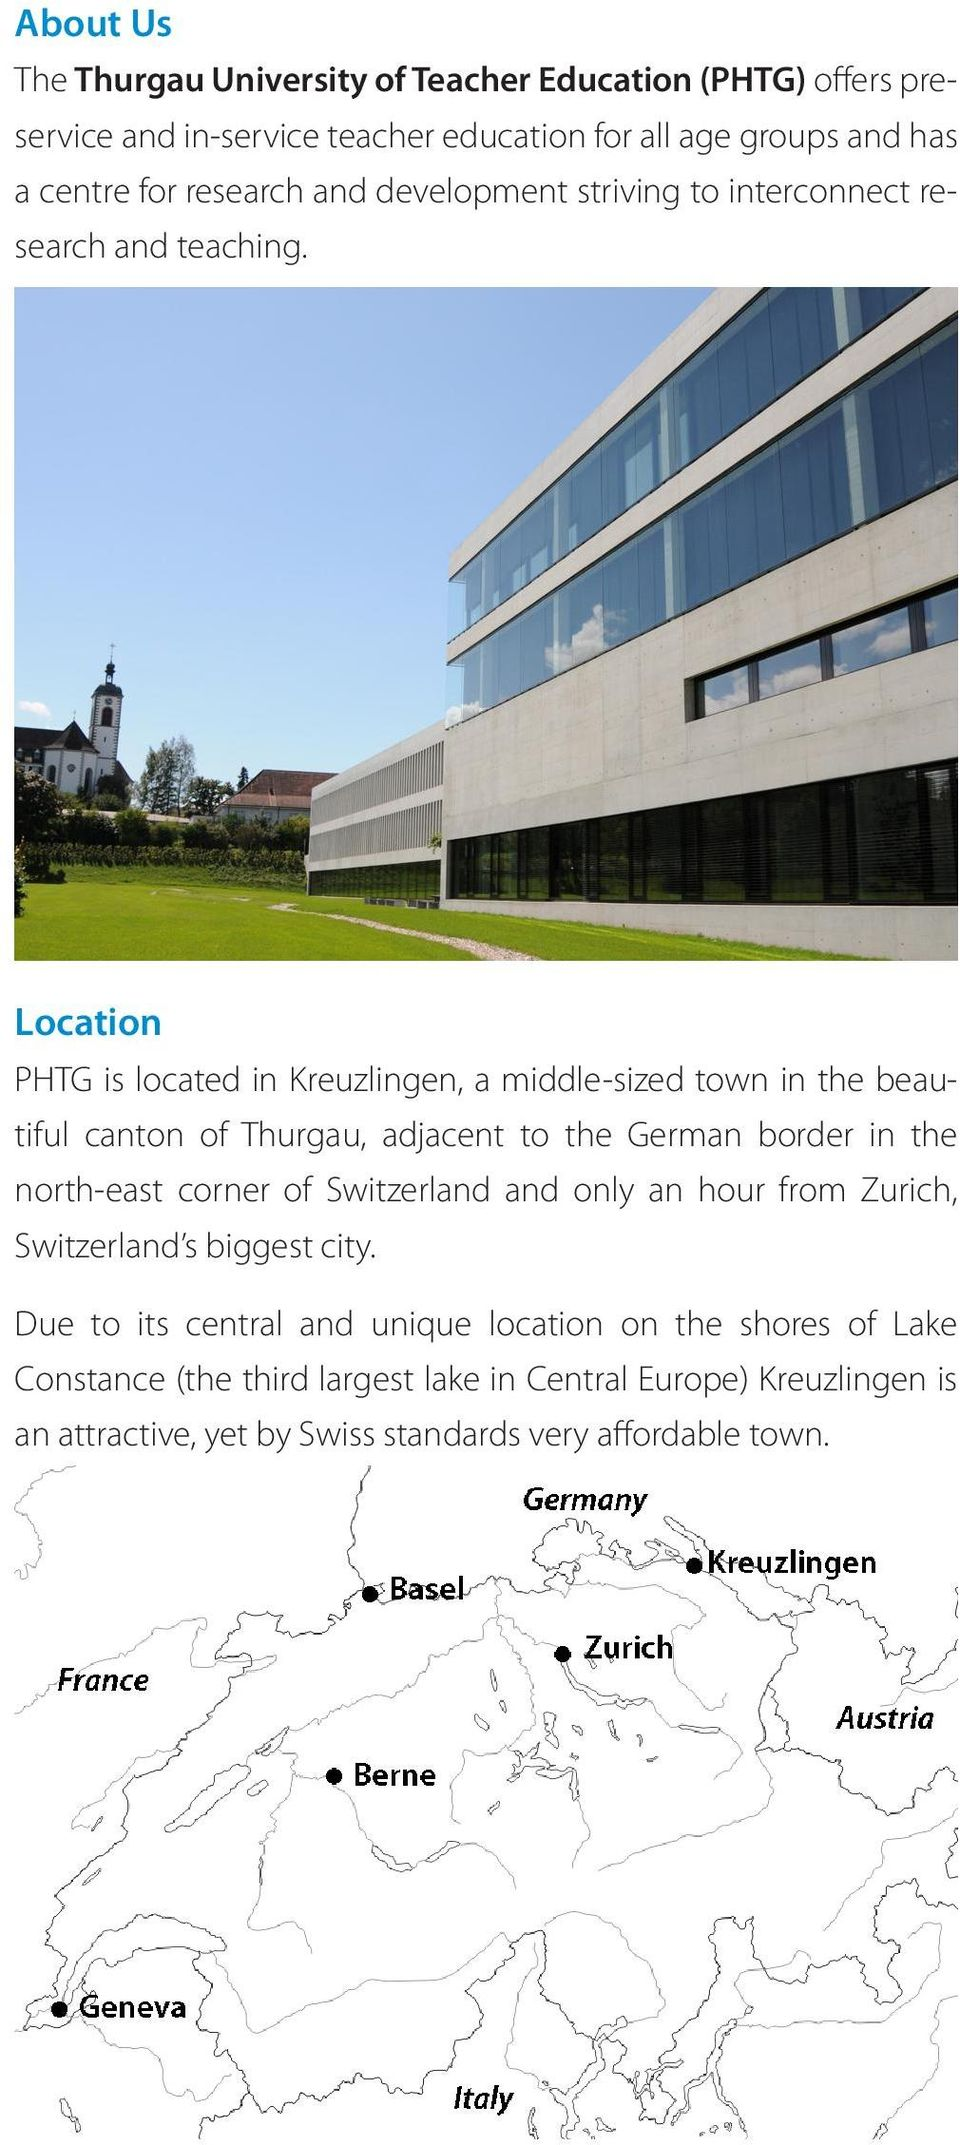 Location PHTG is located in Kreuzlingen, a middle-sized town in the beautiful canton of Thurgau, adjacent to the German border in the north-east corner of